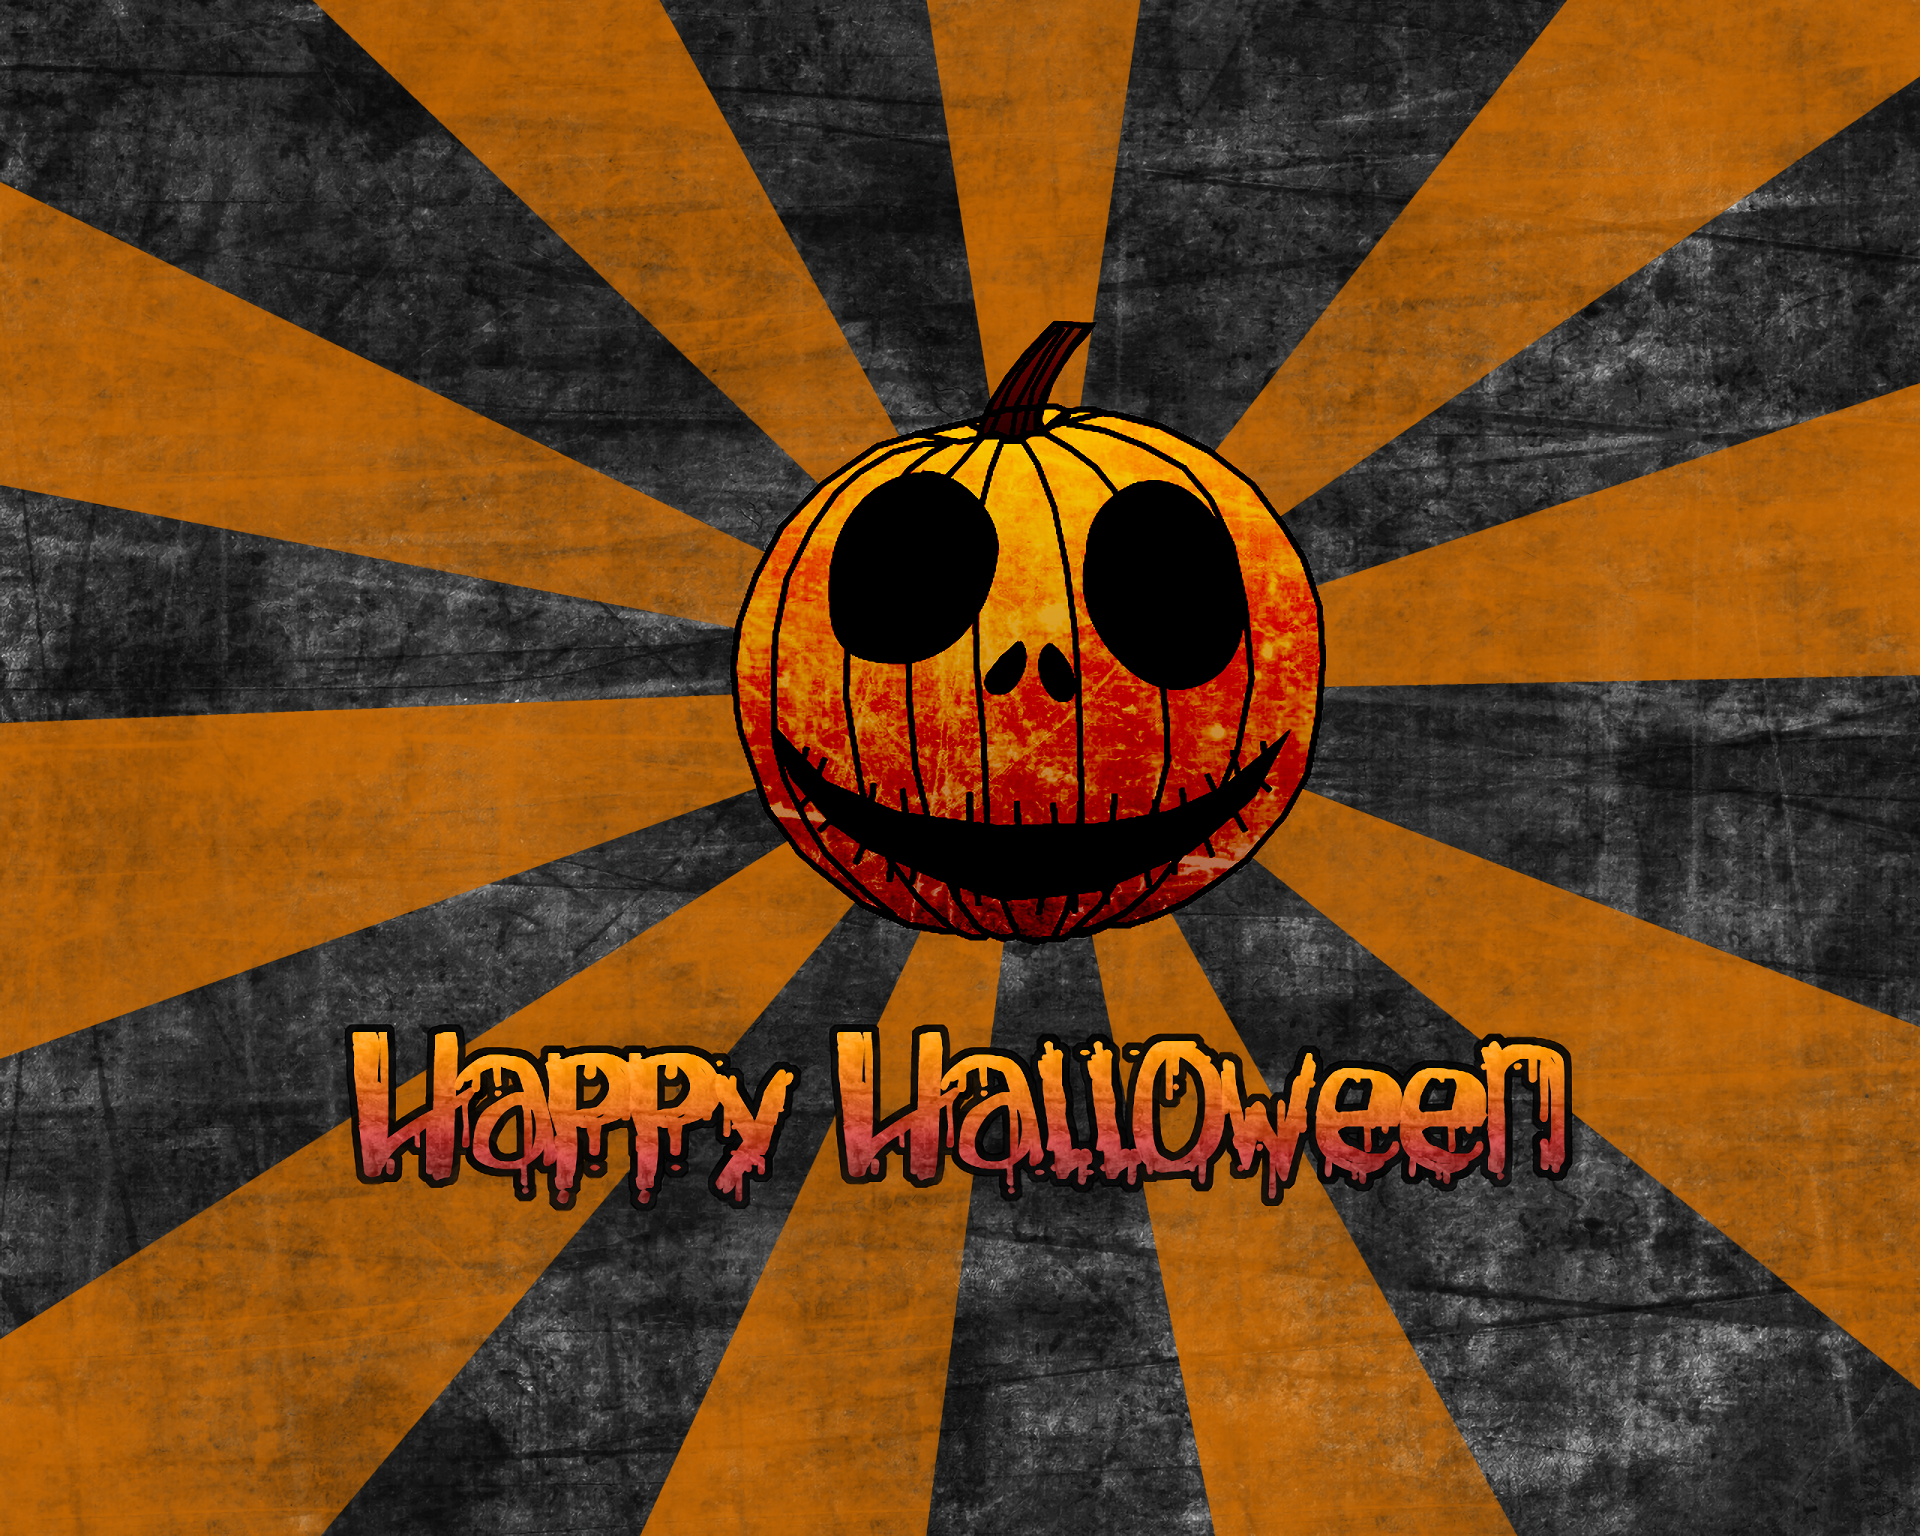 Holiday - Halloween  Happy Halloween Holiday Pumpkin Stripes Jack-o'-lantern Wallpaper